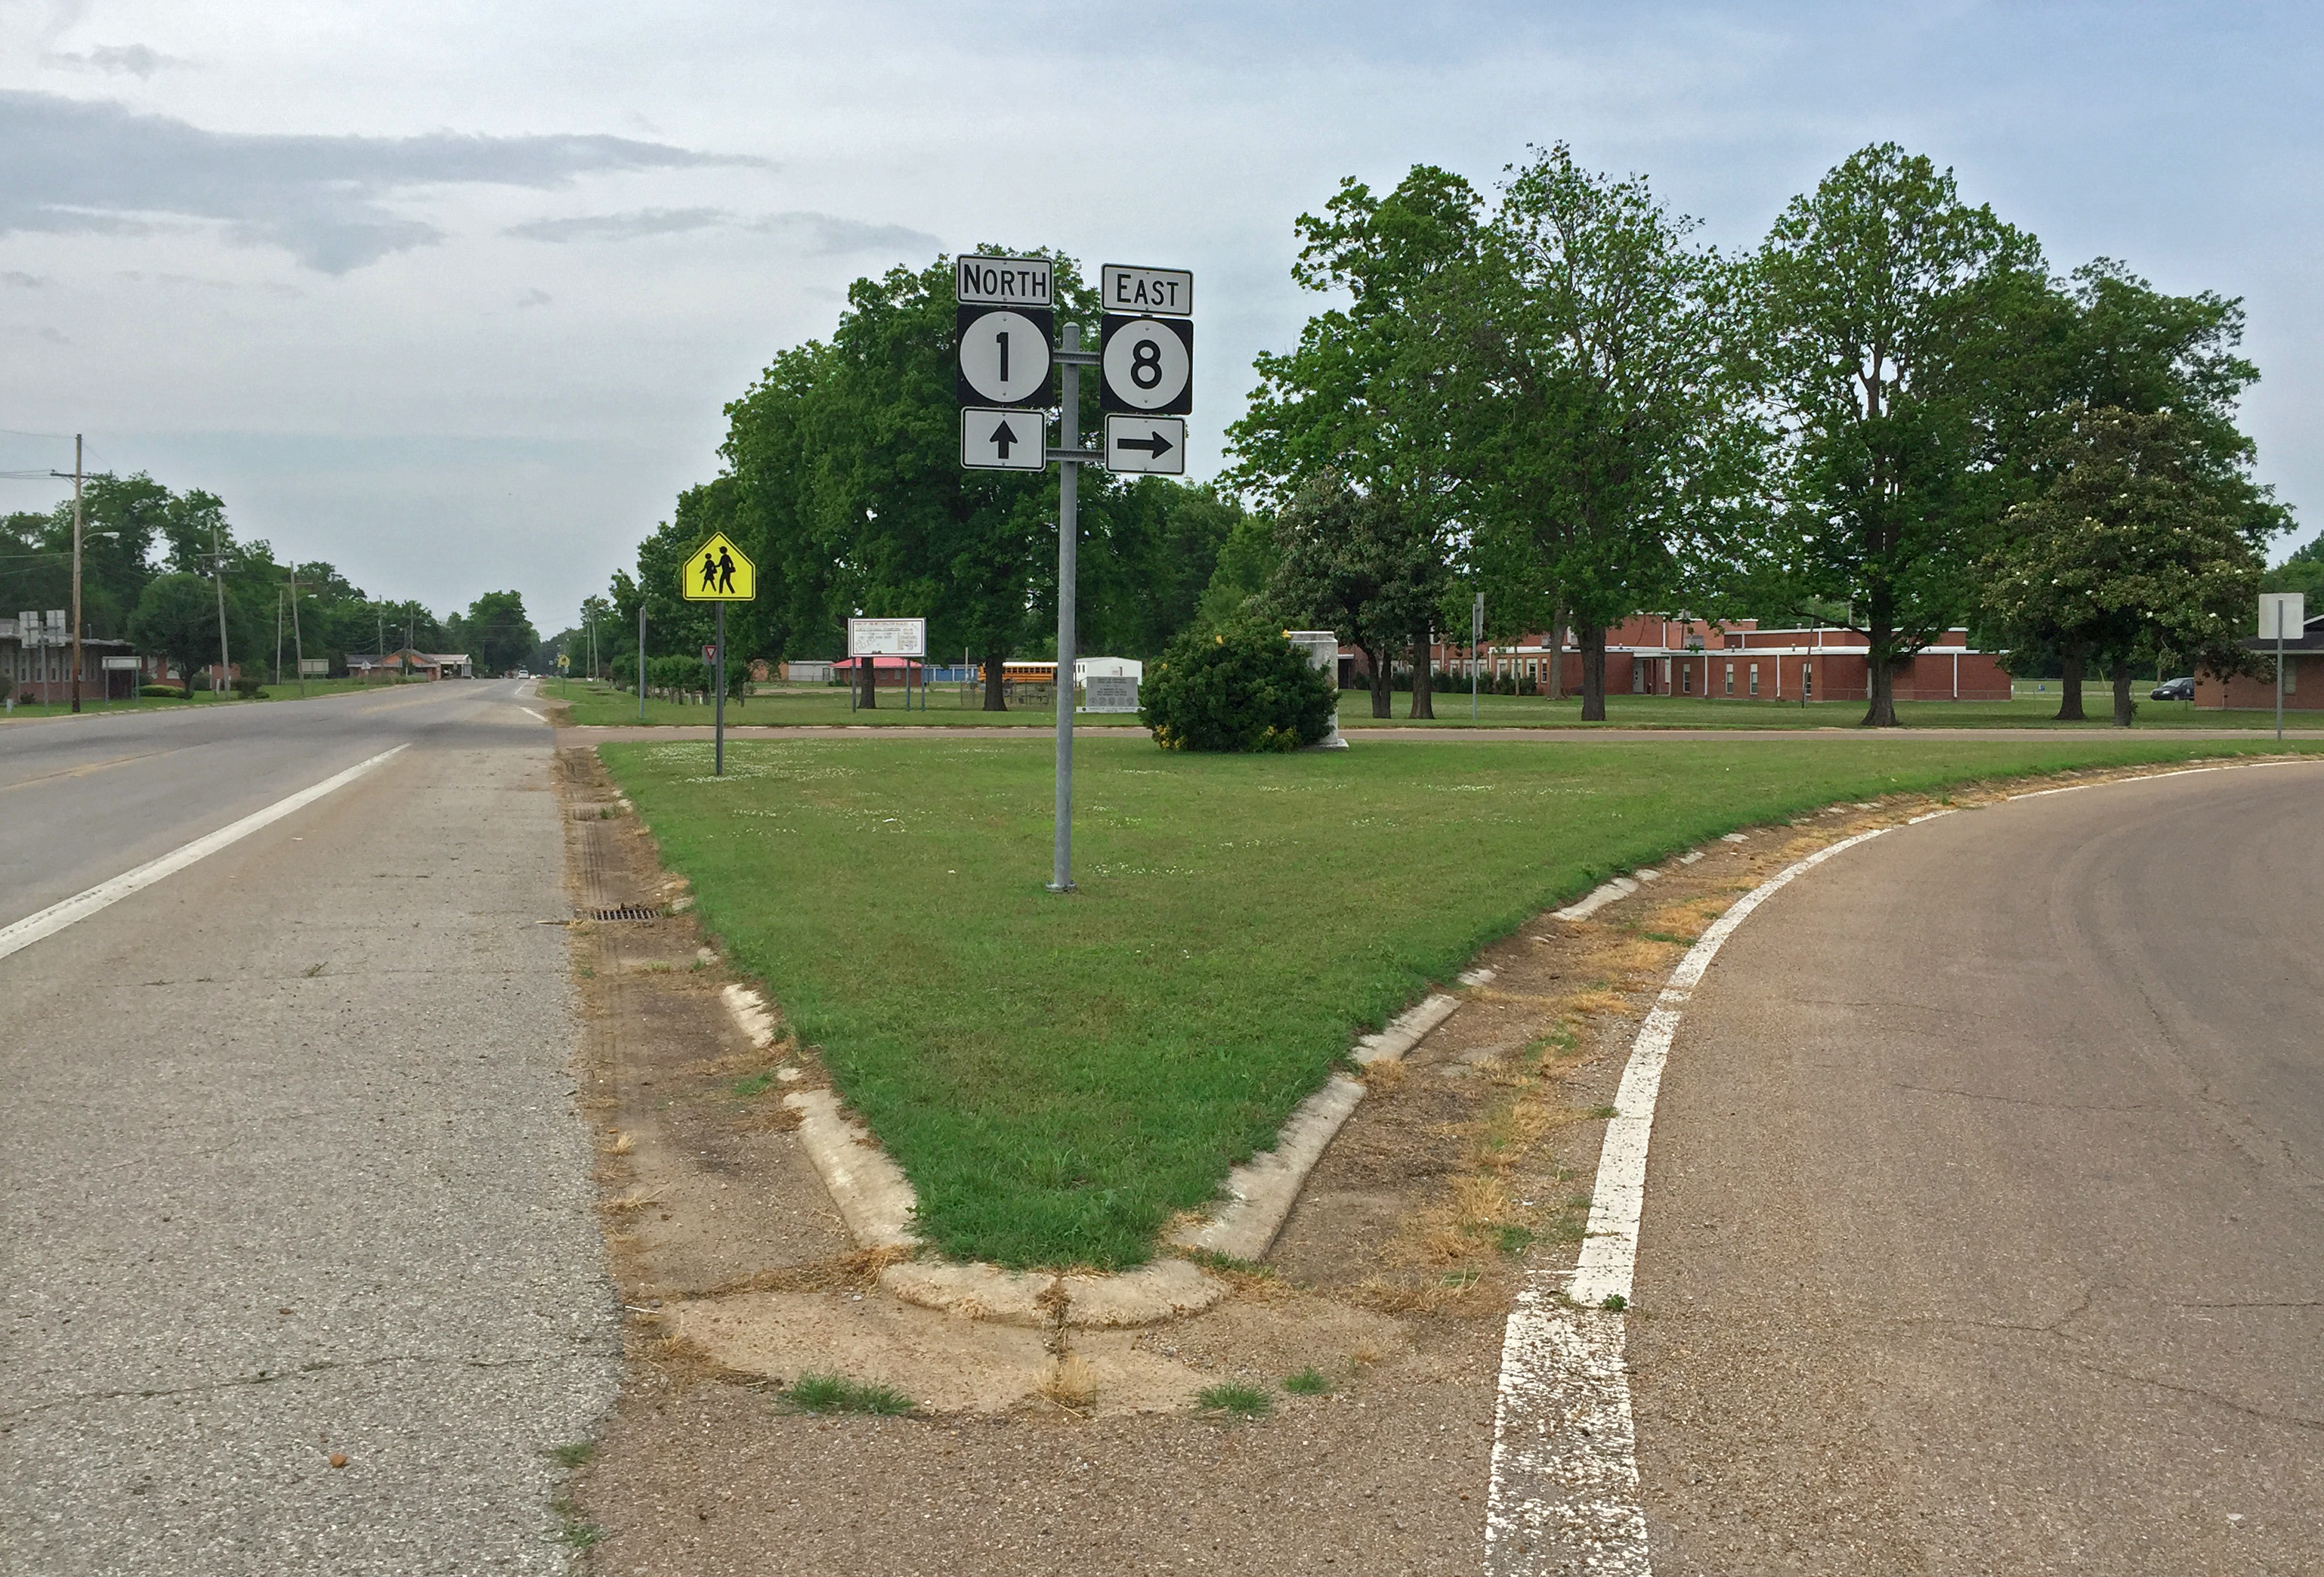 The infamous intersection of Routes 1 and 8 in Rosedale is one of a handful of locations claimed to be the crossroads at which Robert Johnson made his deal with the devil.